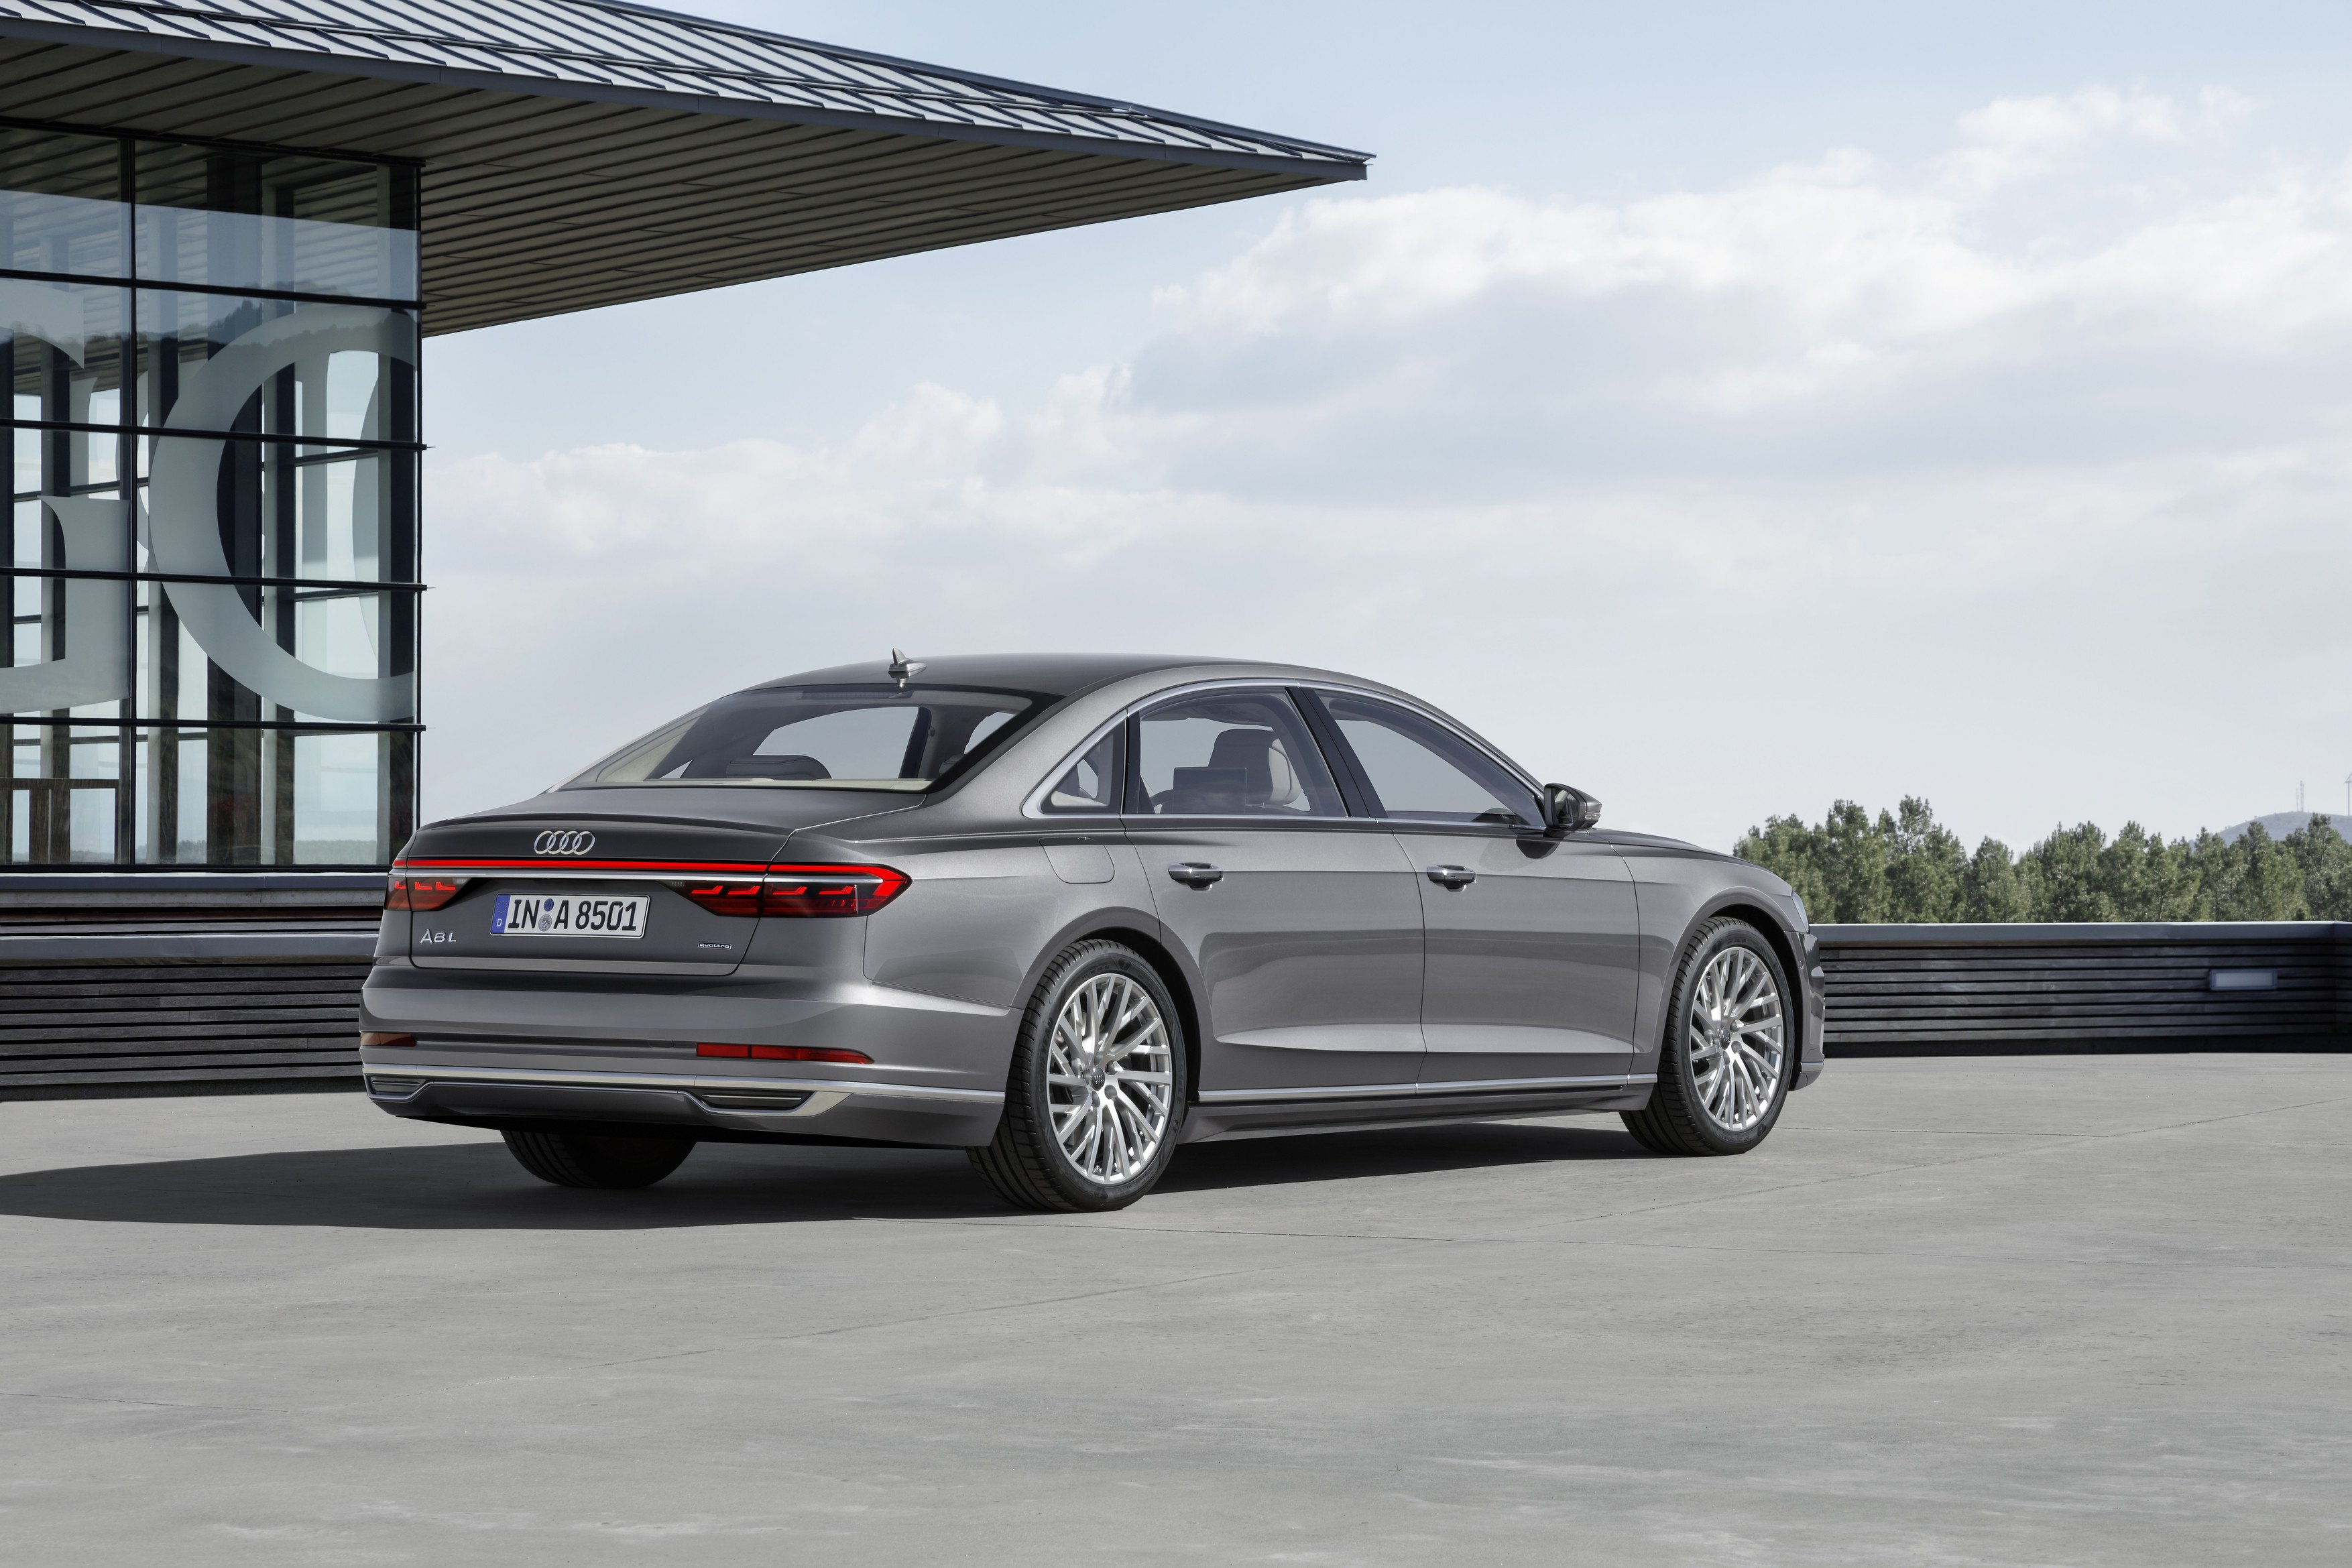 Is The New Audi A8 The Most Technologically Advanced Car Yet? A178320 medium